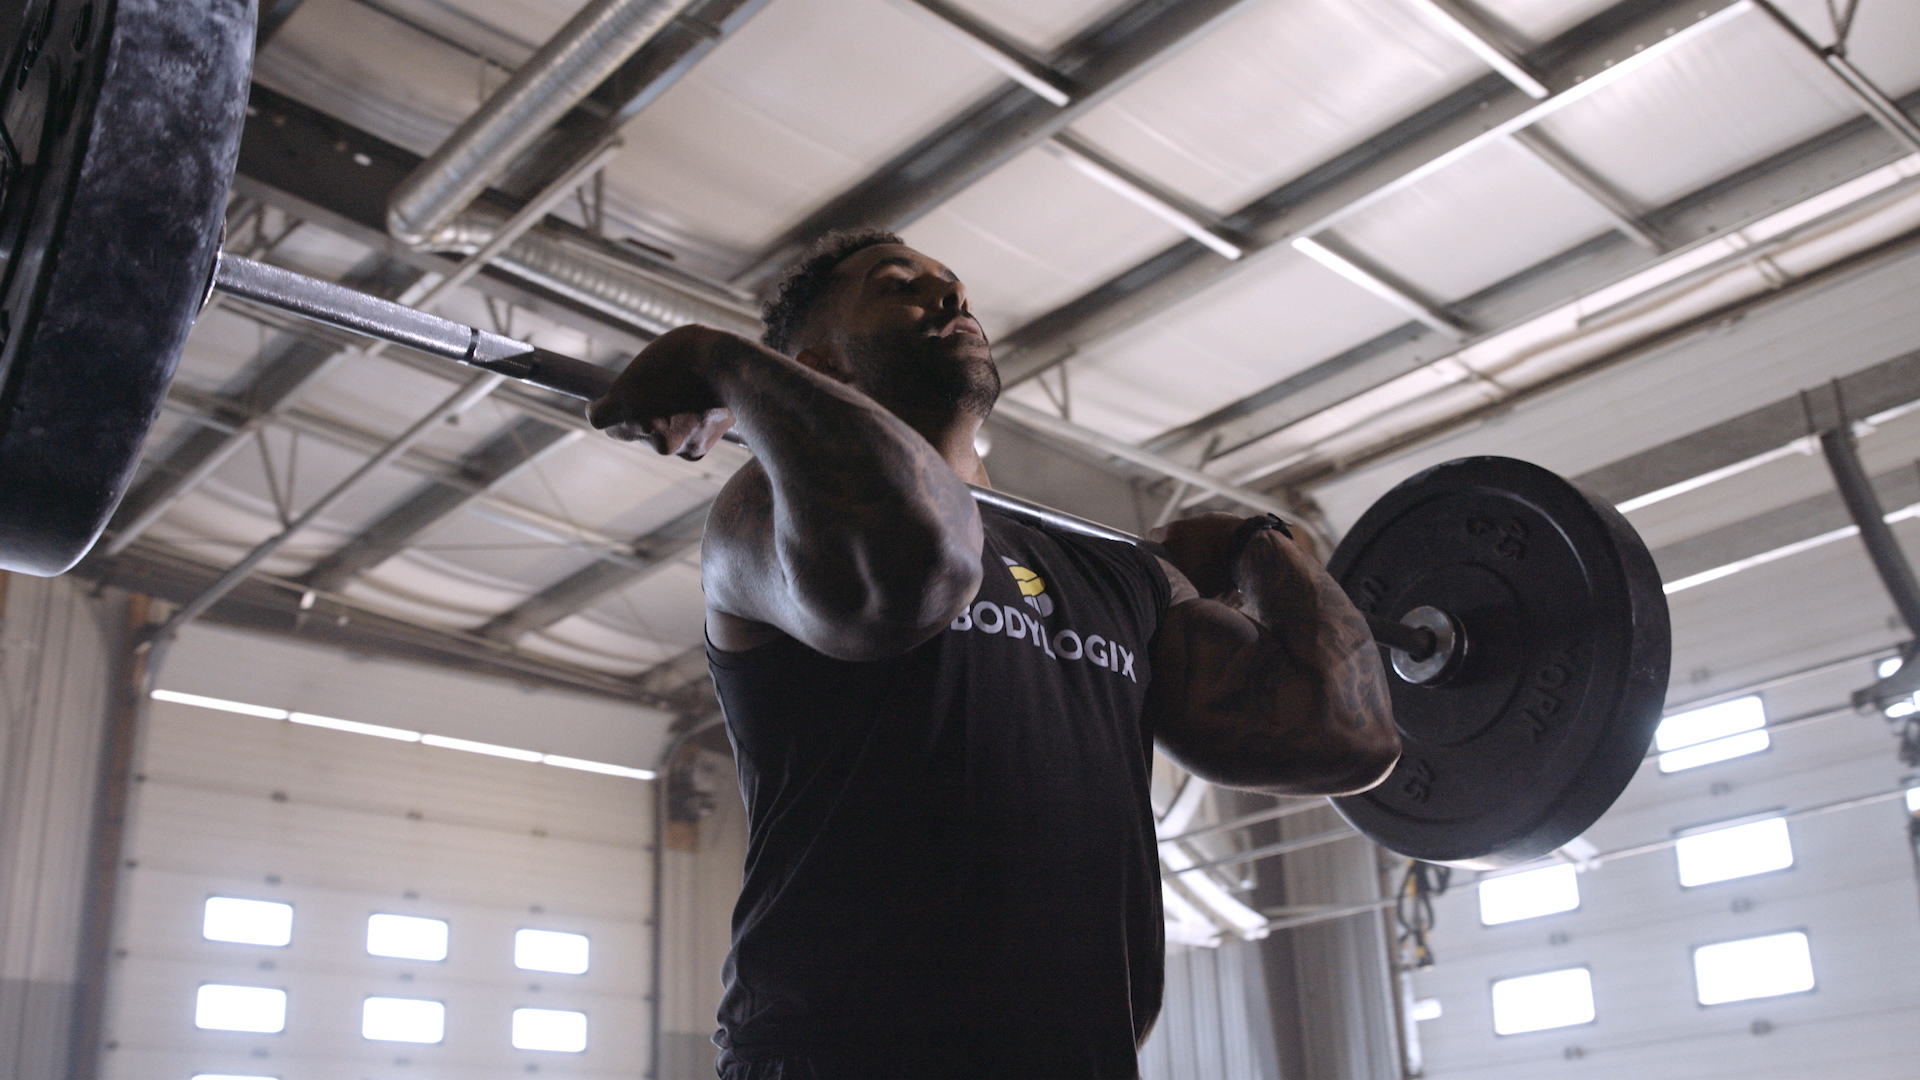 An image of a man lifting a barbell above his shoulders in a garage-like gym.